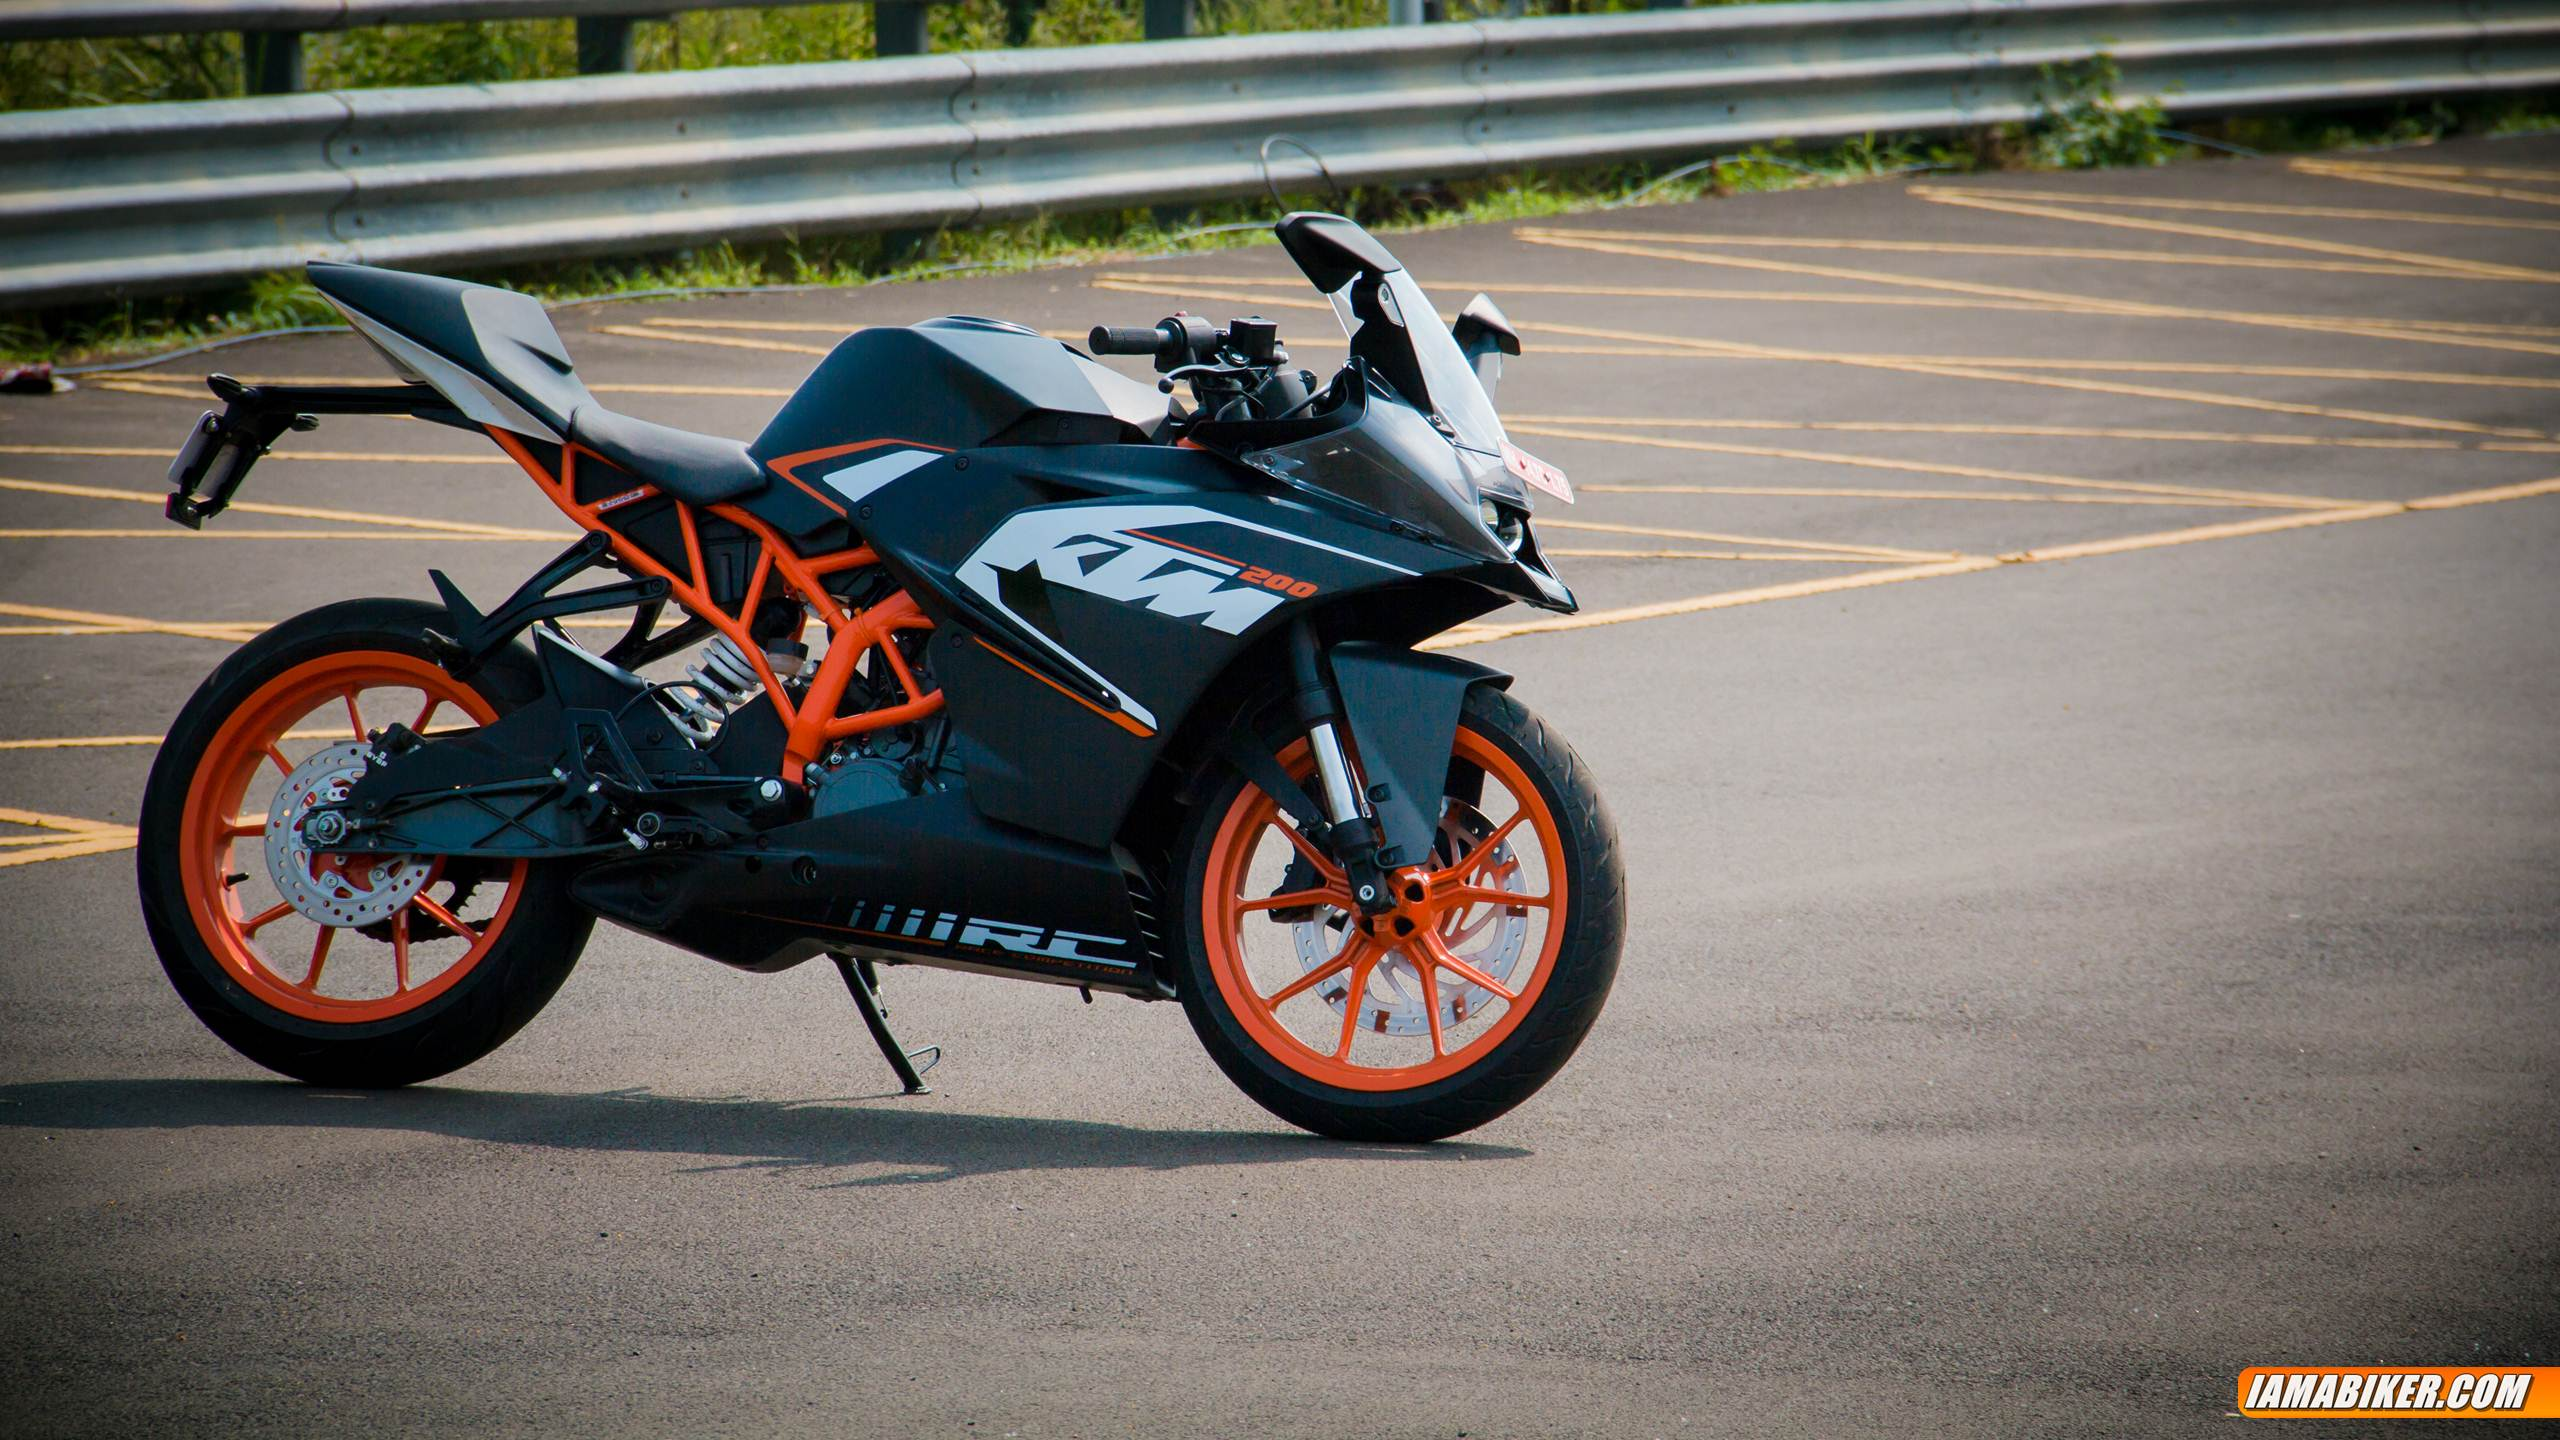 Ktm Bikes Wallpapers: First Ride Report